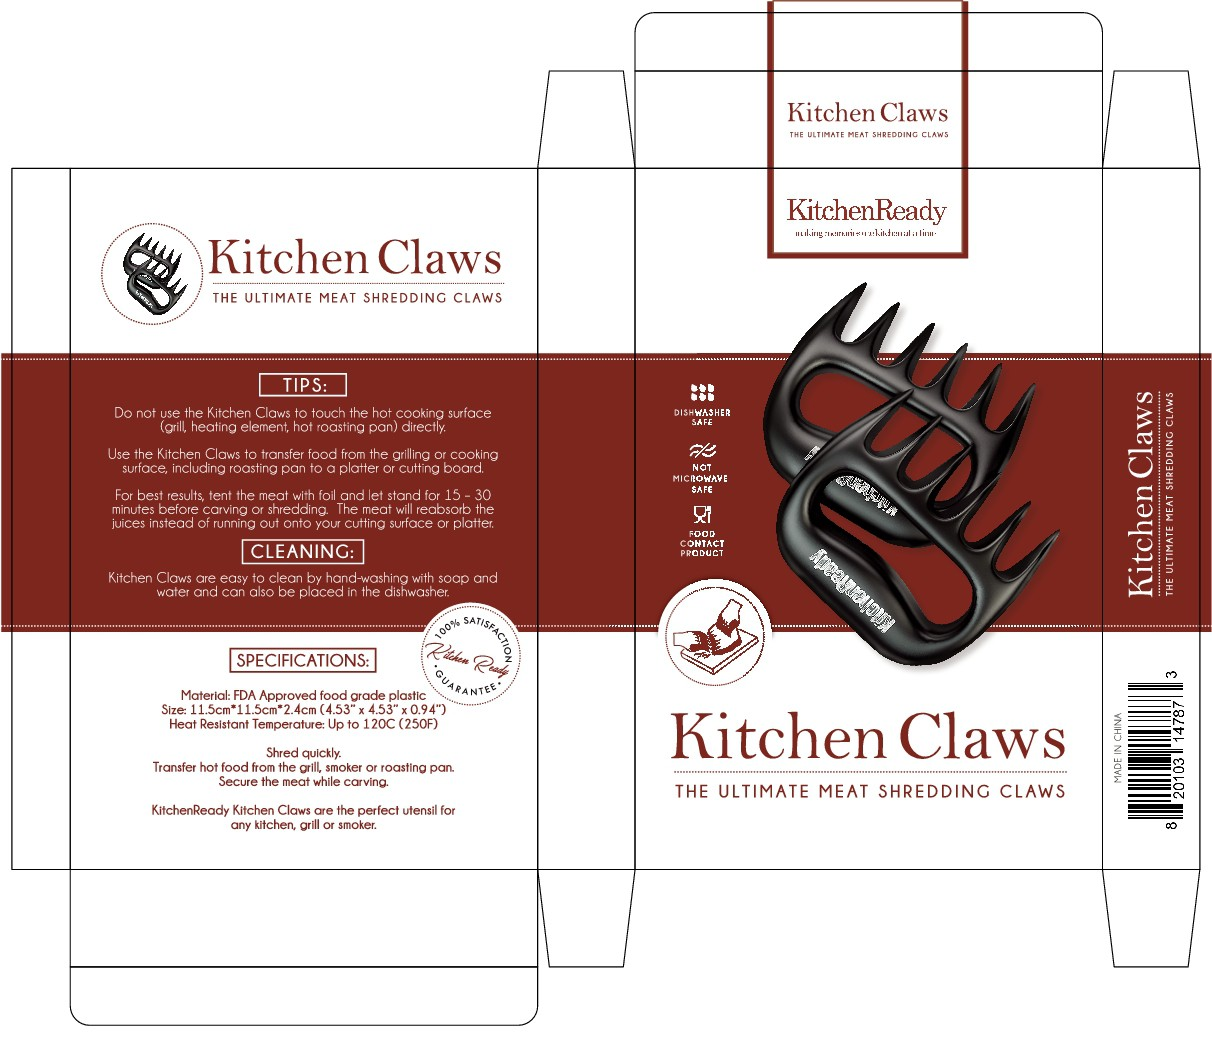 New Design For Product Packaging